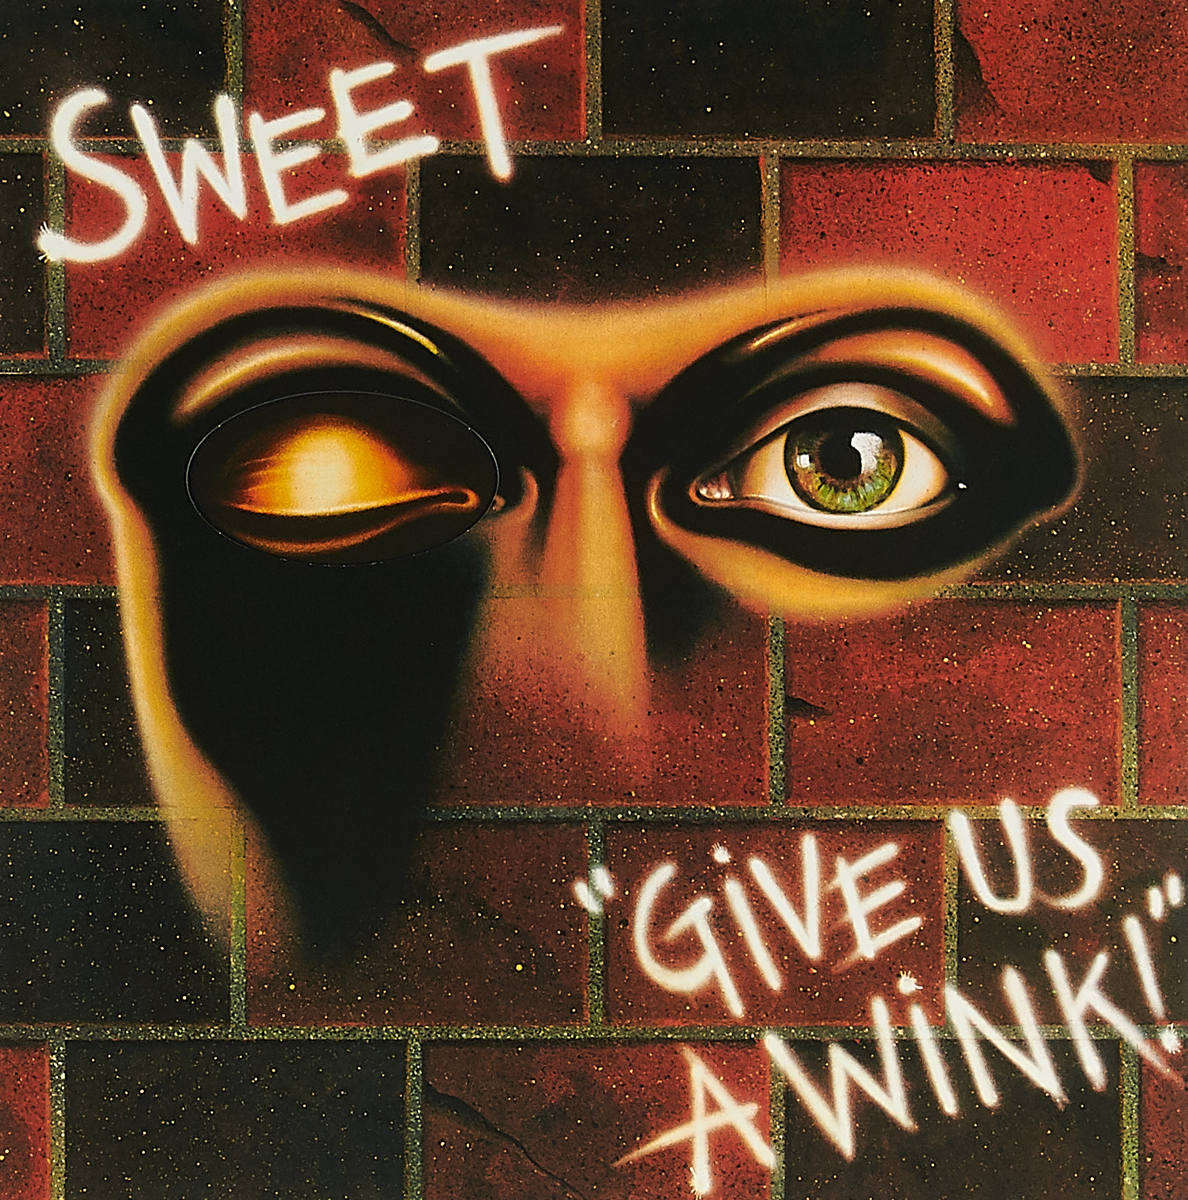 Sweet Sweet. Give Us A Wink (New Vinyl Edition) (LP) sweet sweet desolation boulevard new vinyl edition lp